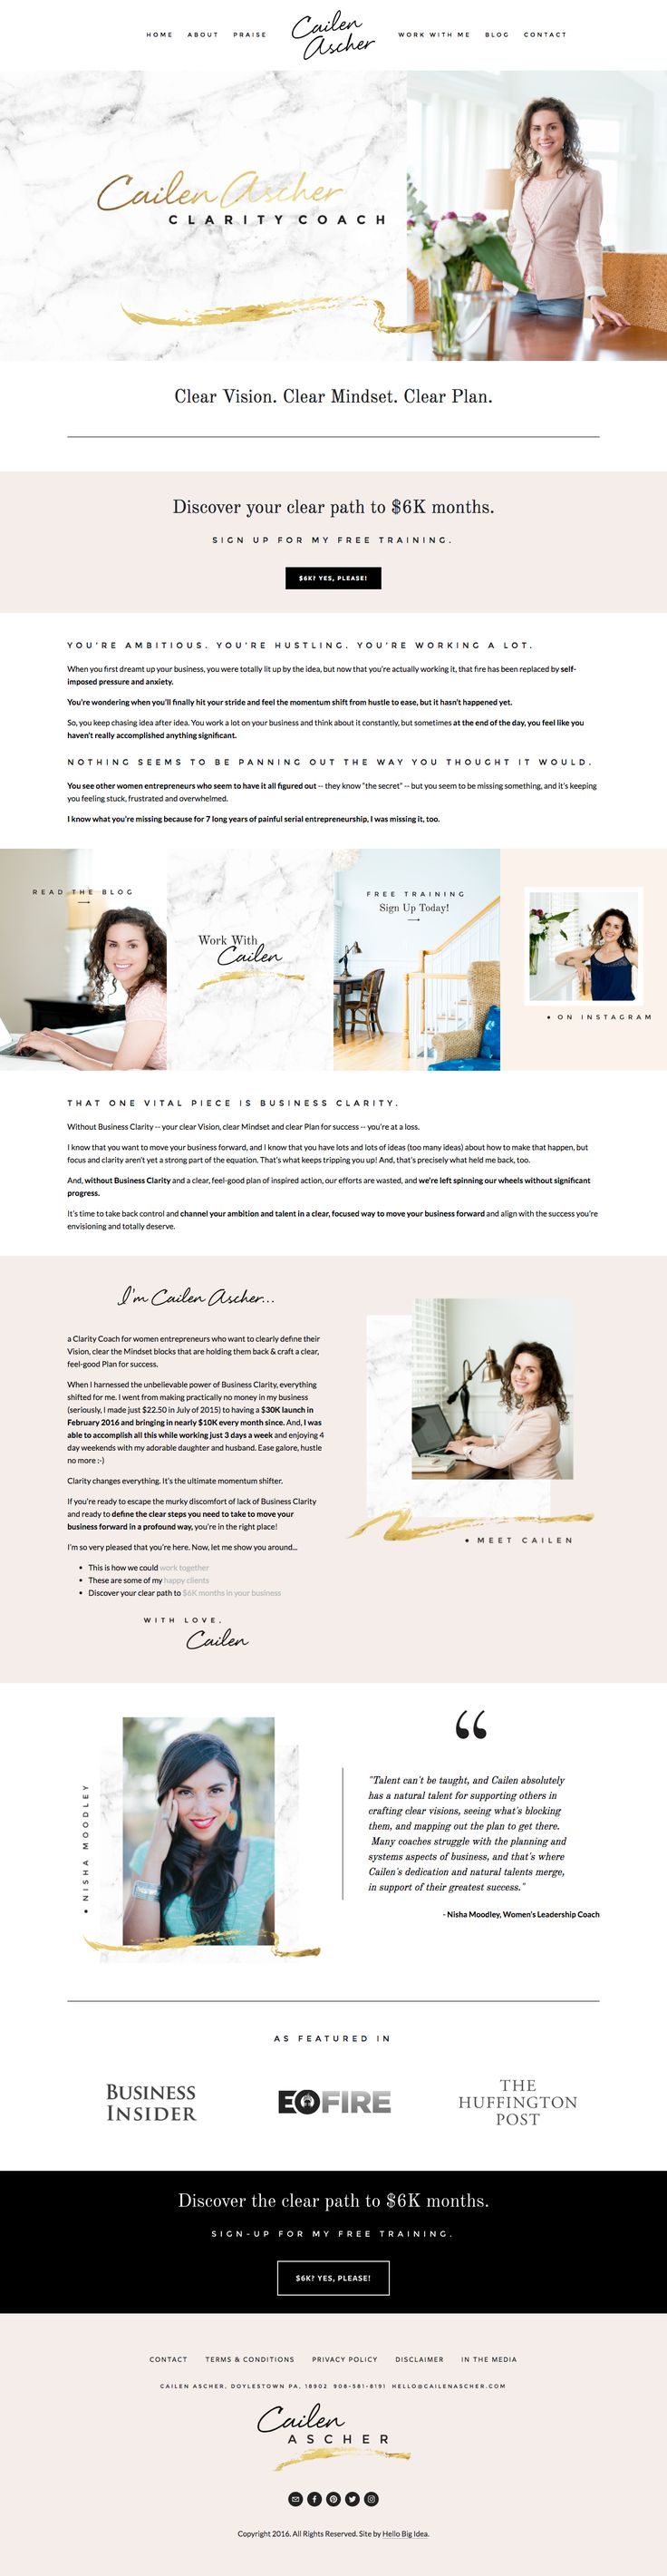 Squarespace site - cailenascher.com Design and branding by Hello Big Idea. hellobigidea.com